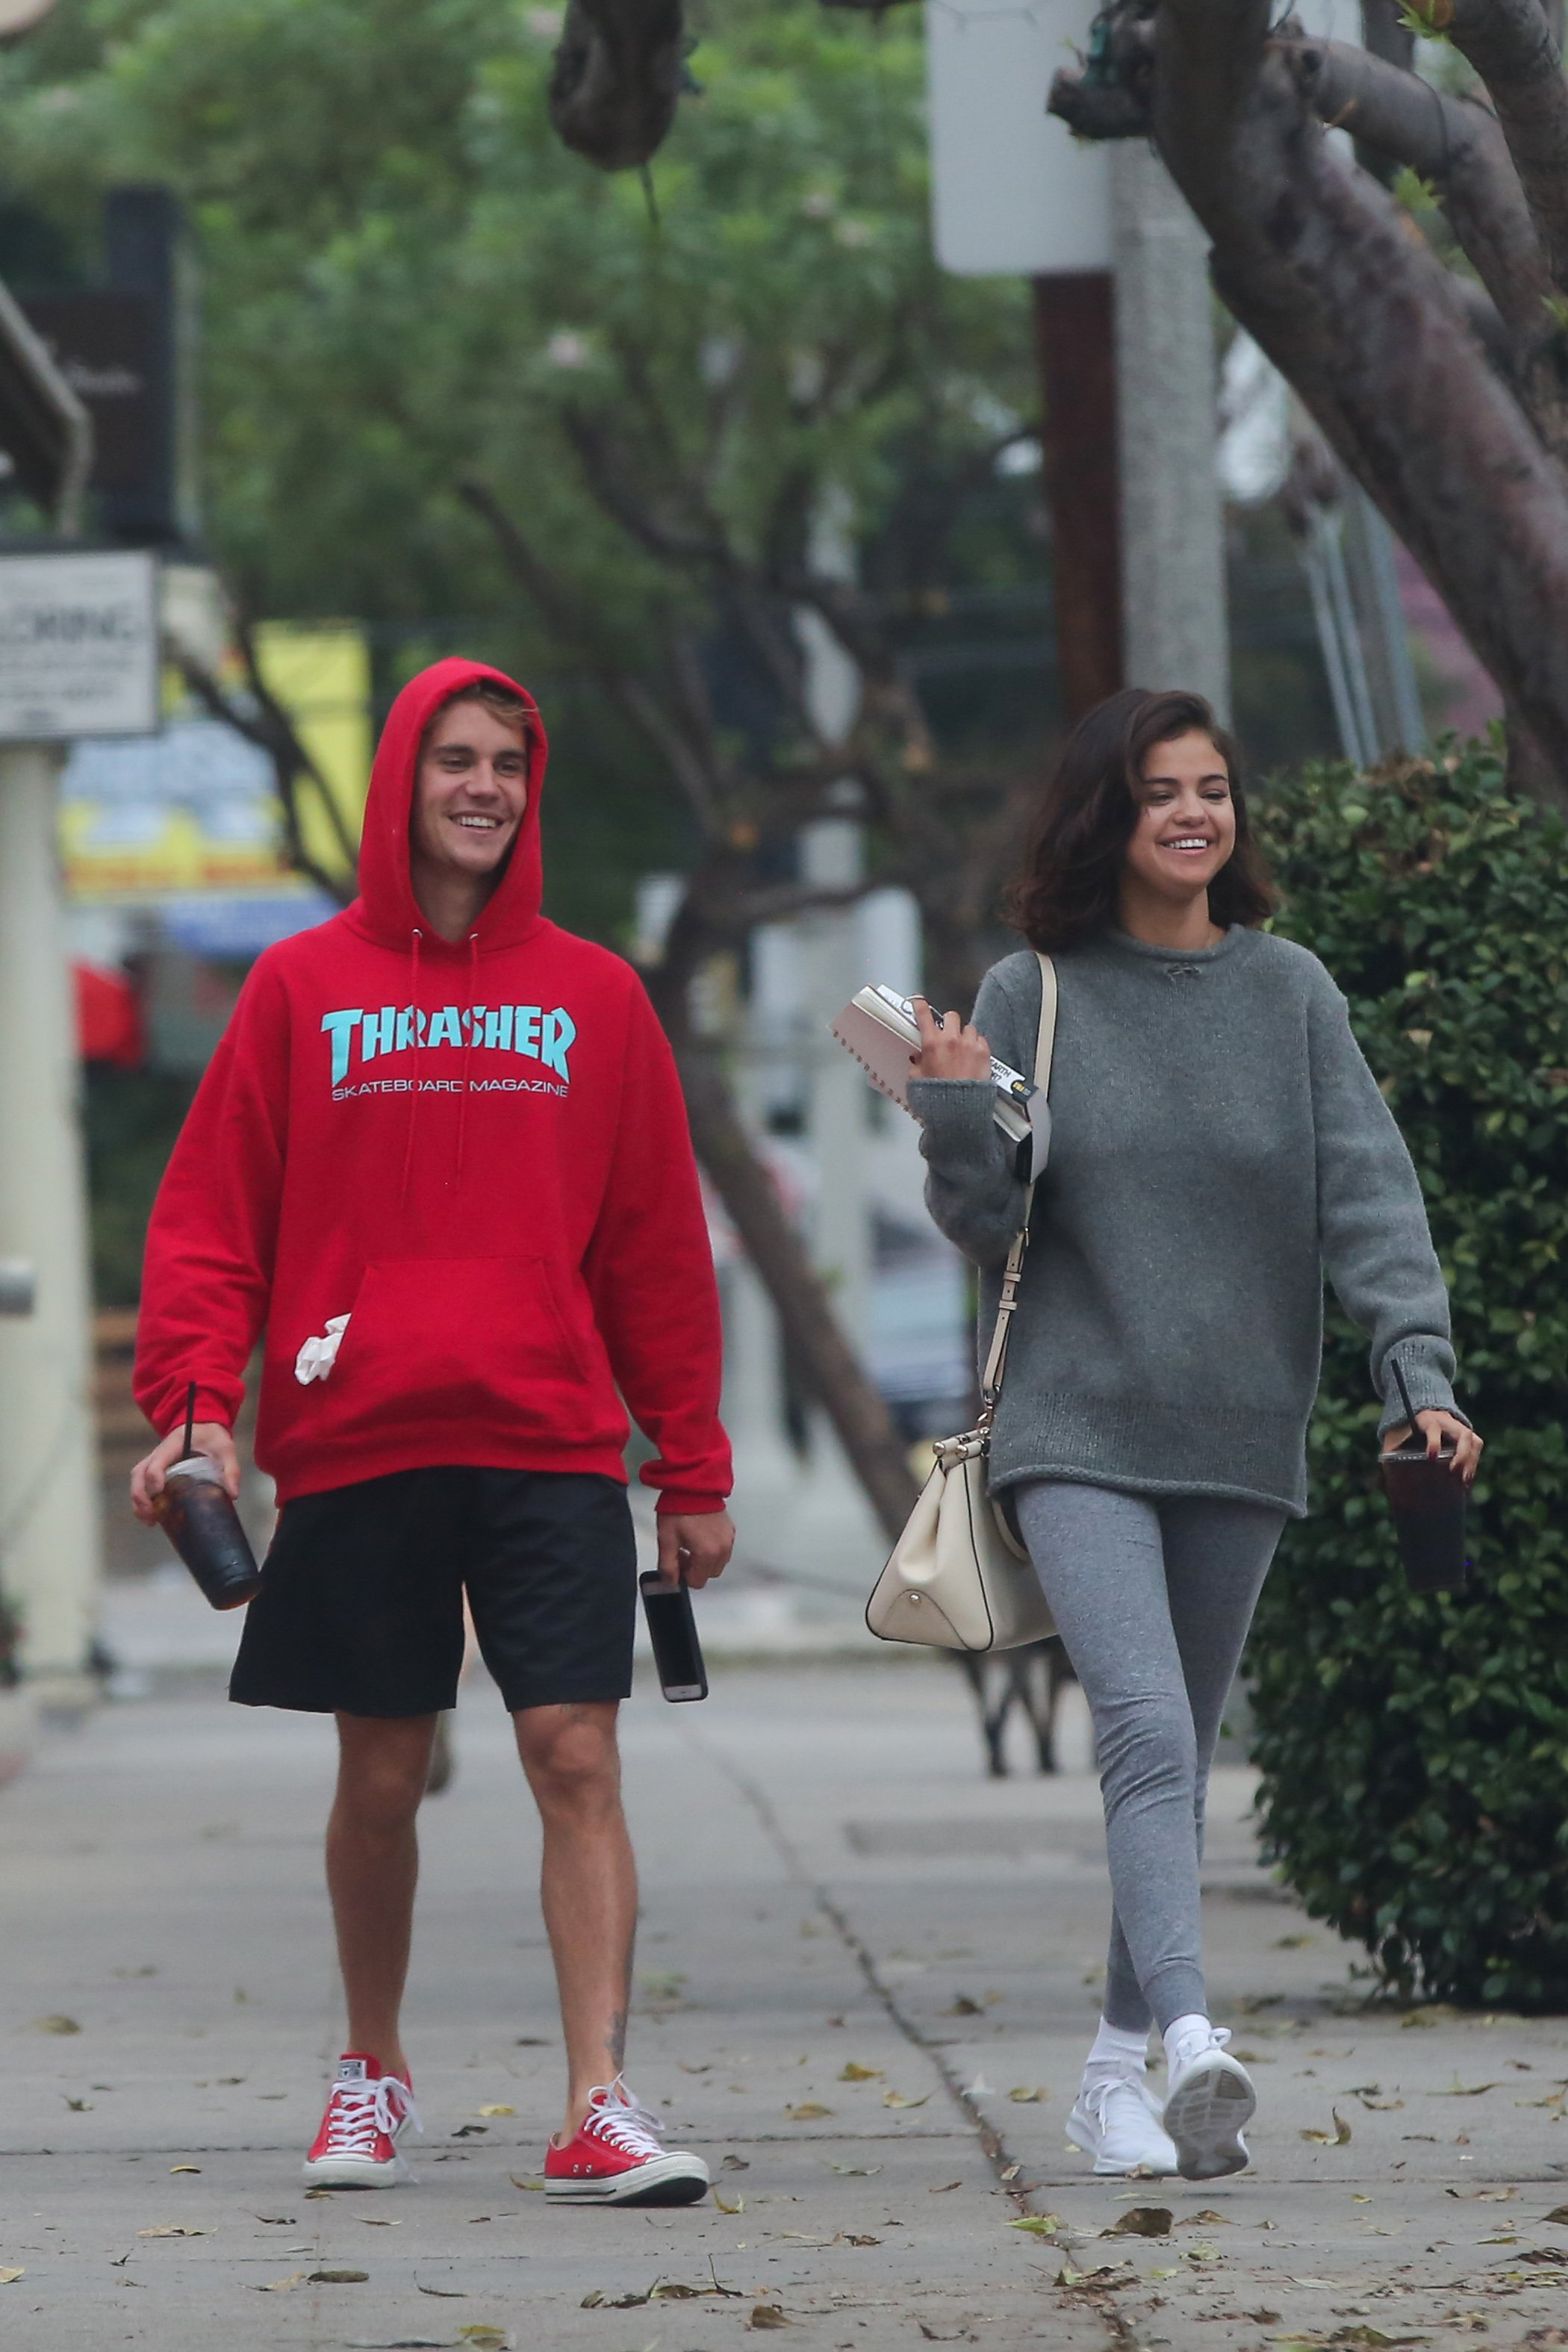 PREMIUM RATES APPLY, Los Angeles, CA - 11/1/2017 -Justin Bieber and Selena Gomez hanging out together Gomez was dumped several weeks ago by The Weeknd.  -PICTURED: Justin Bieber, Selena Gomez -, Image: 354395483, License: Rights-managed, Restrictions: PREMIUM RATES APPLY, Model Release: no, Credit line: Profimedia, INSTAR Images